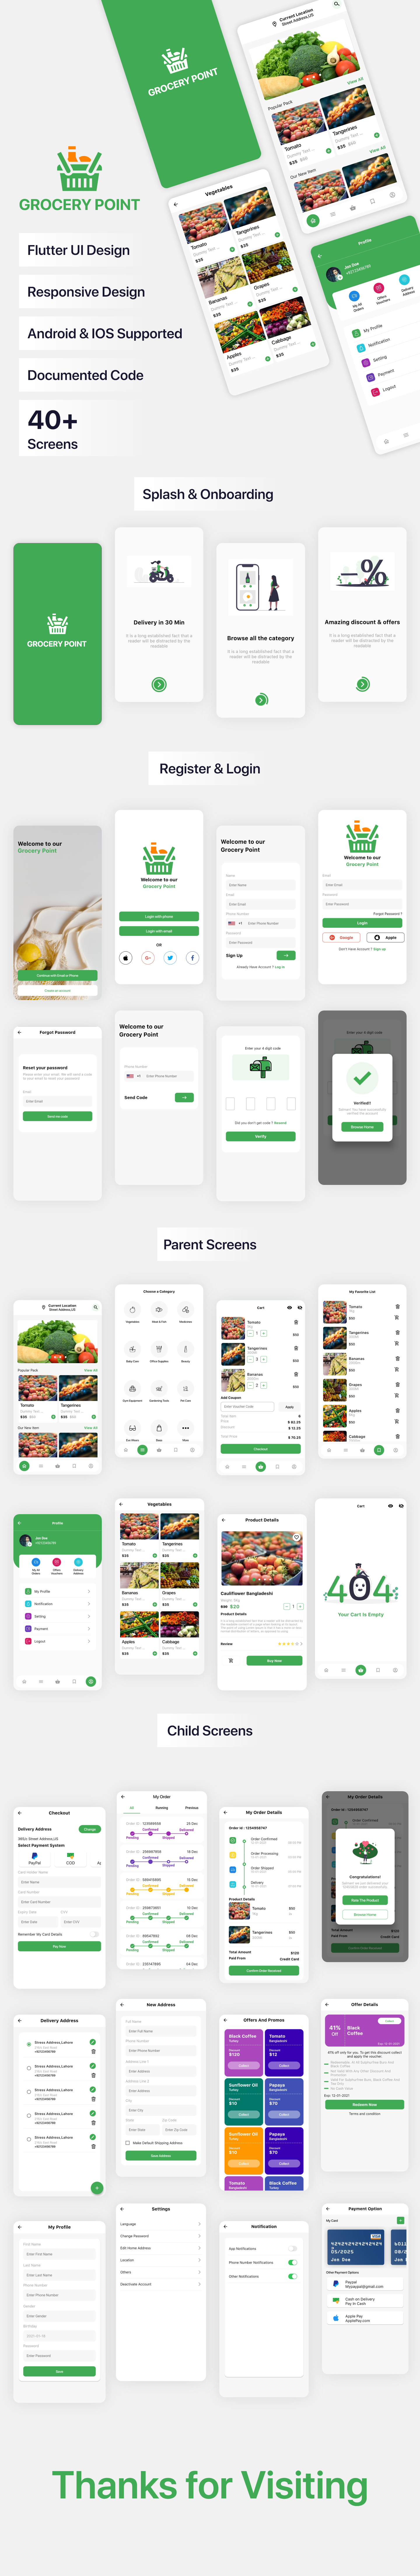 Grocery Point App Mockup